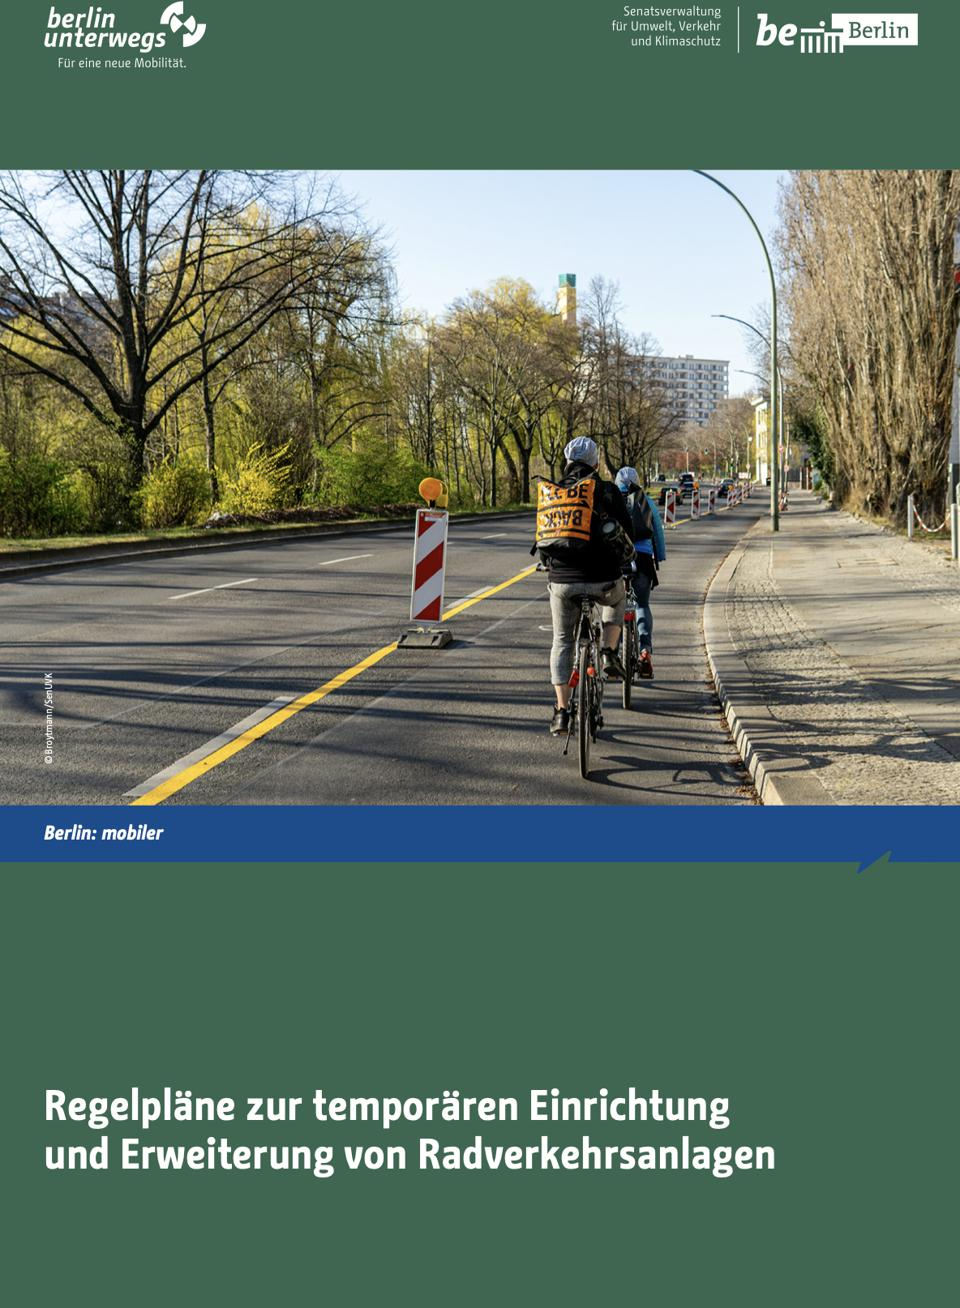 State of Berlin's emergency cycling infrastructure guidance.